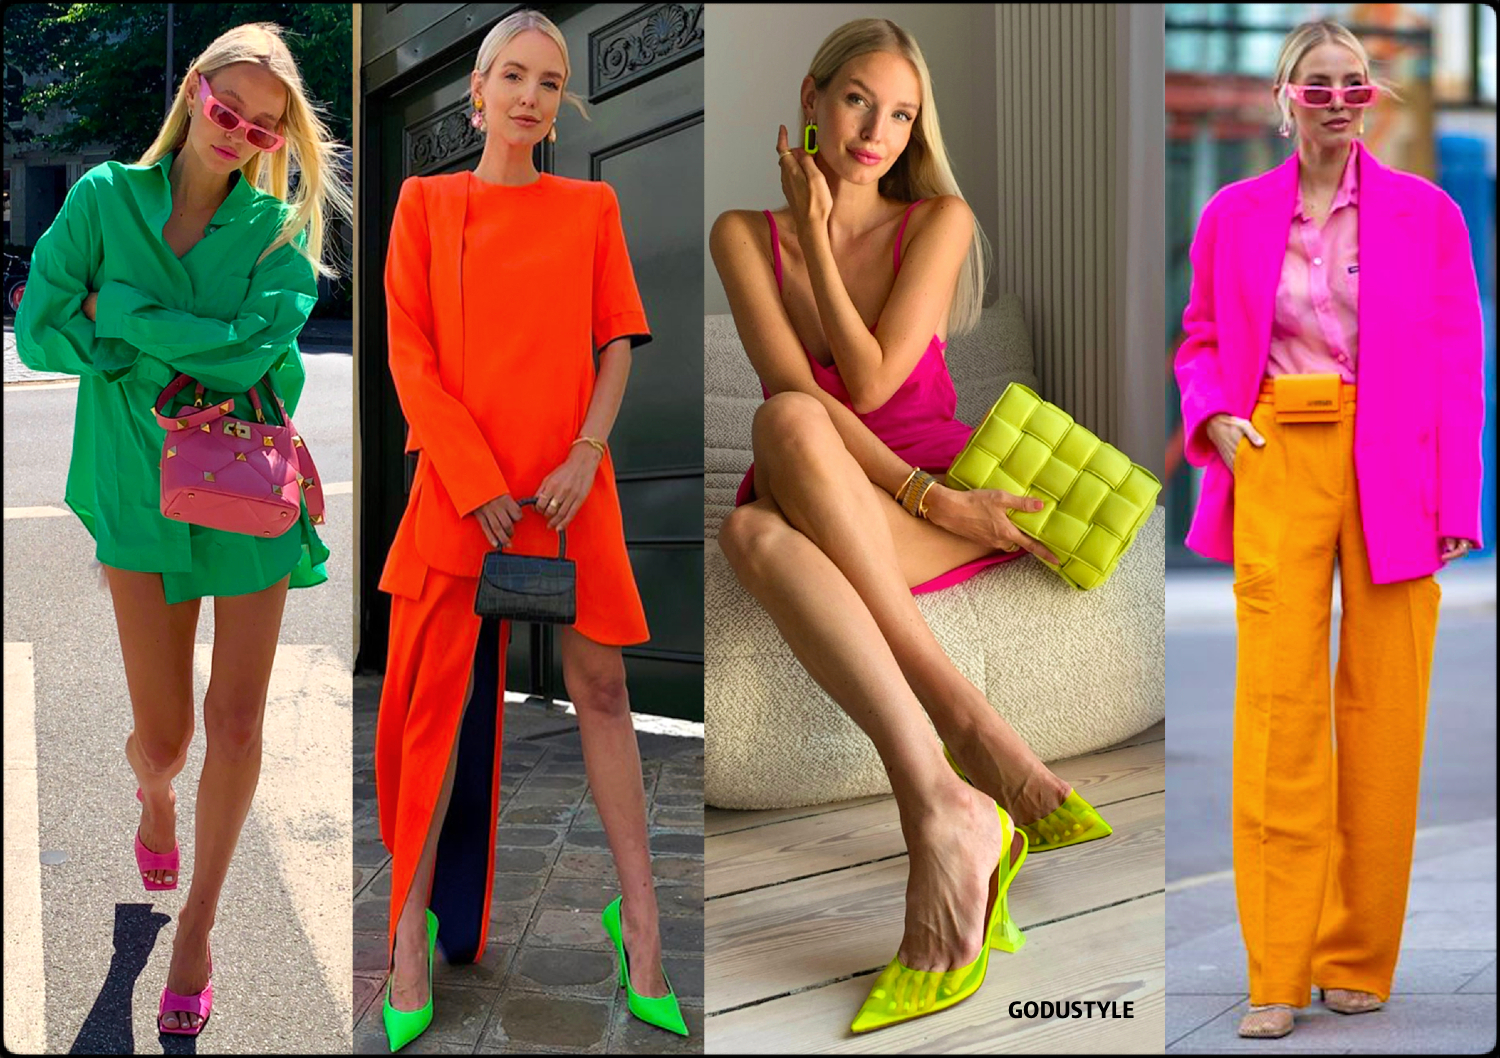 neon-color-fashion-accessories-trend-leonie-hanne-look2-street-style-details-2021-2022-shopping-moda-godustyle